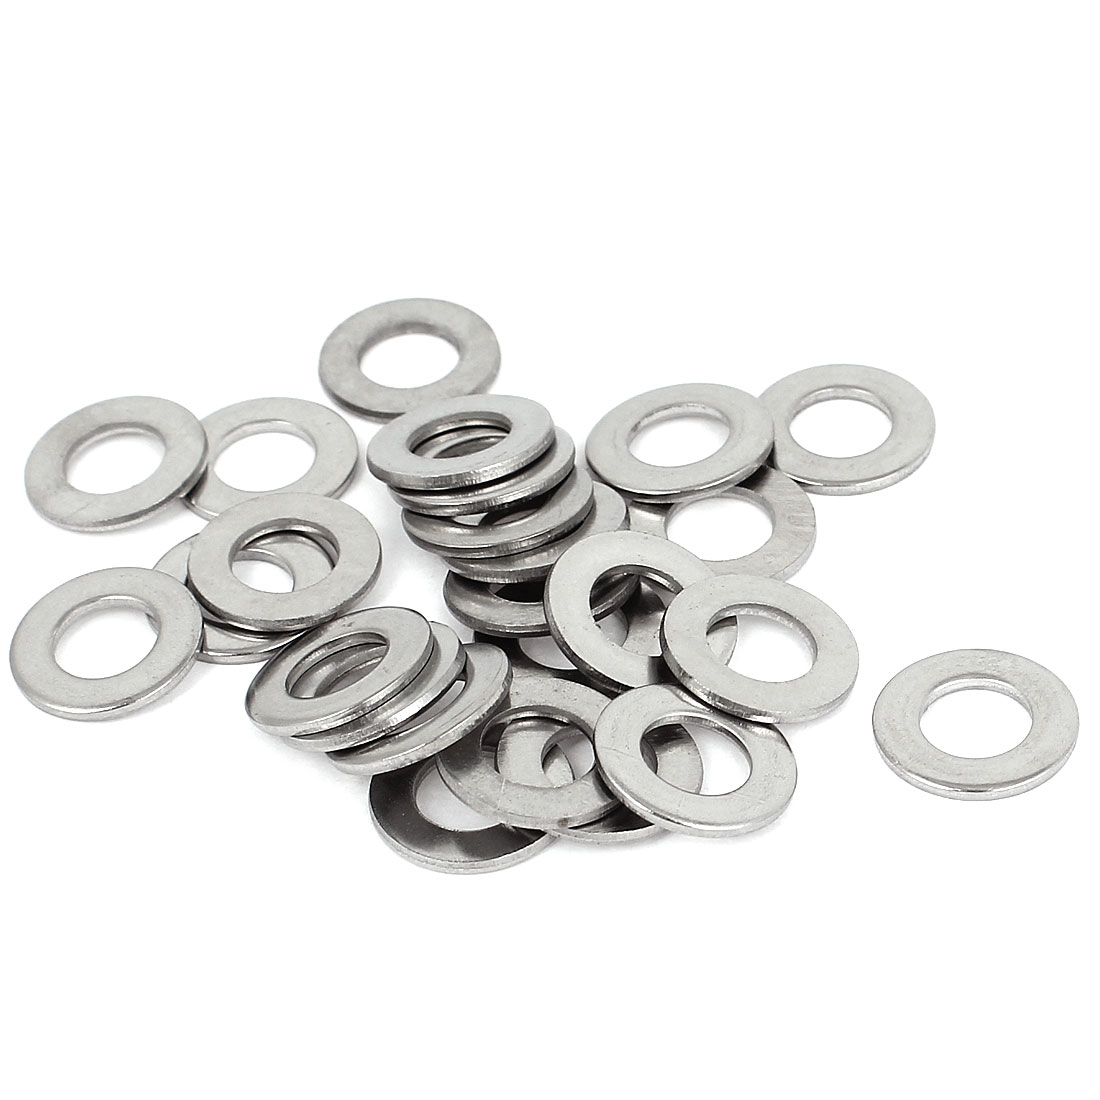 "25pcs Silver Tone 304 Stainless Steel Flat Washer 5/16"" for Screws Bolts"